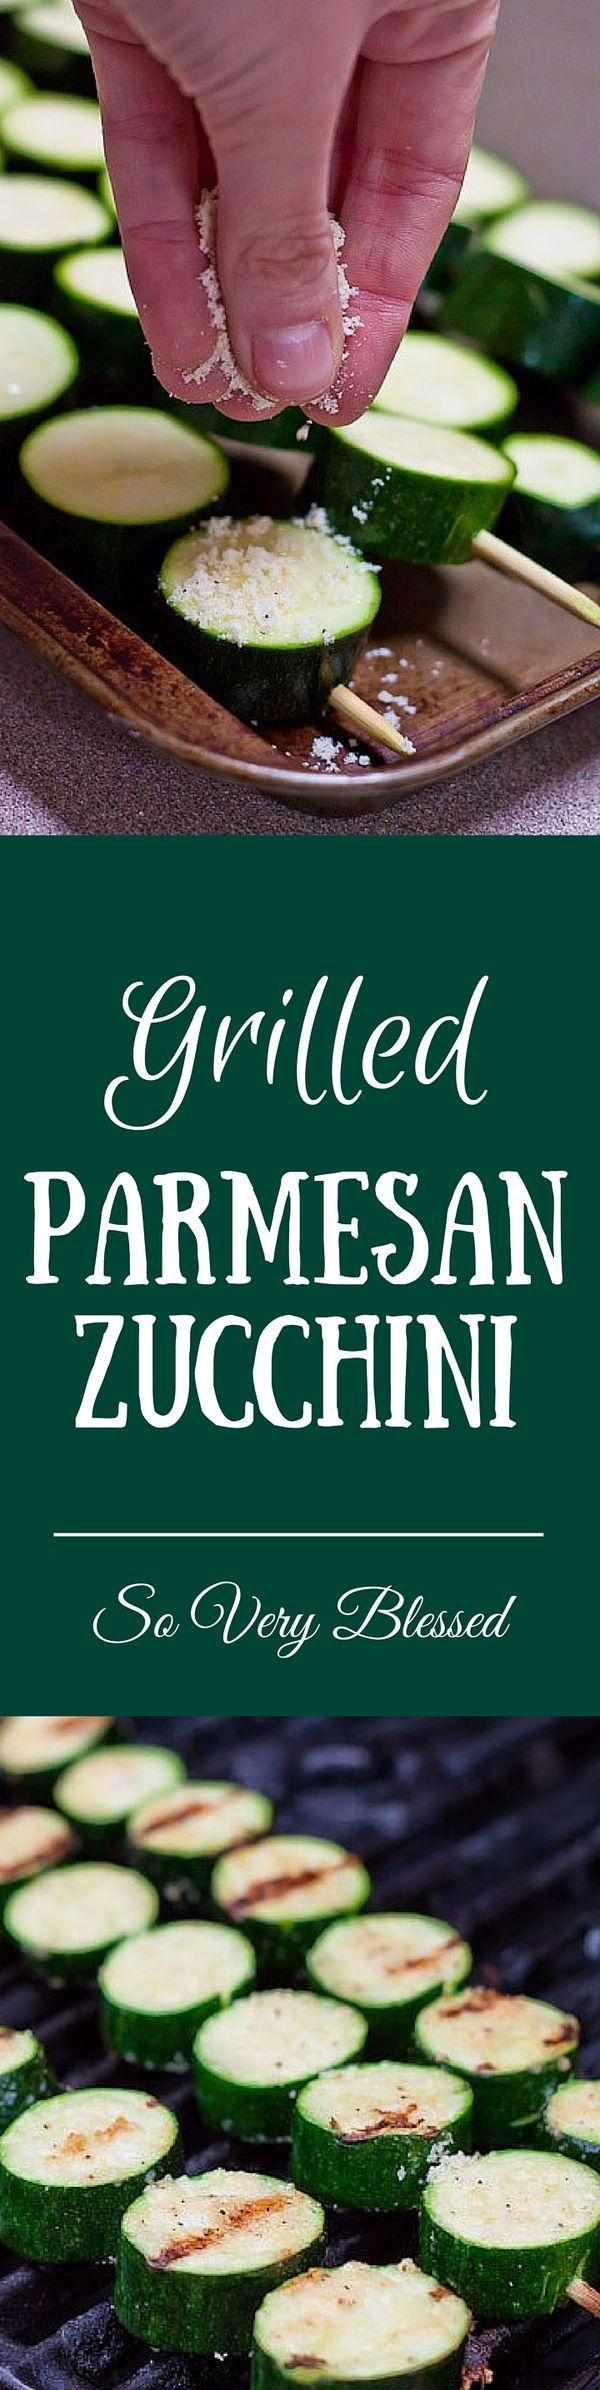 Toss some of these on the grill tonight!   SoVeryBlessed.com #grilling #summer #zucchini